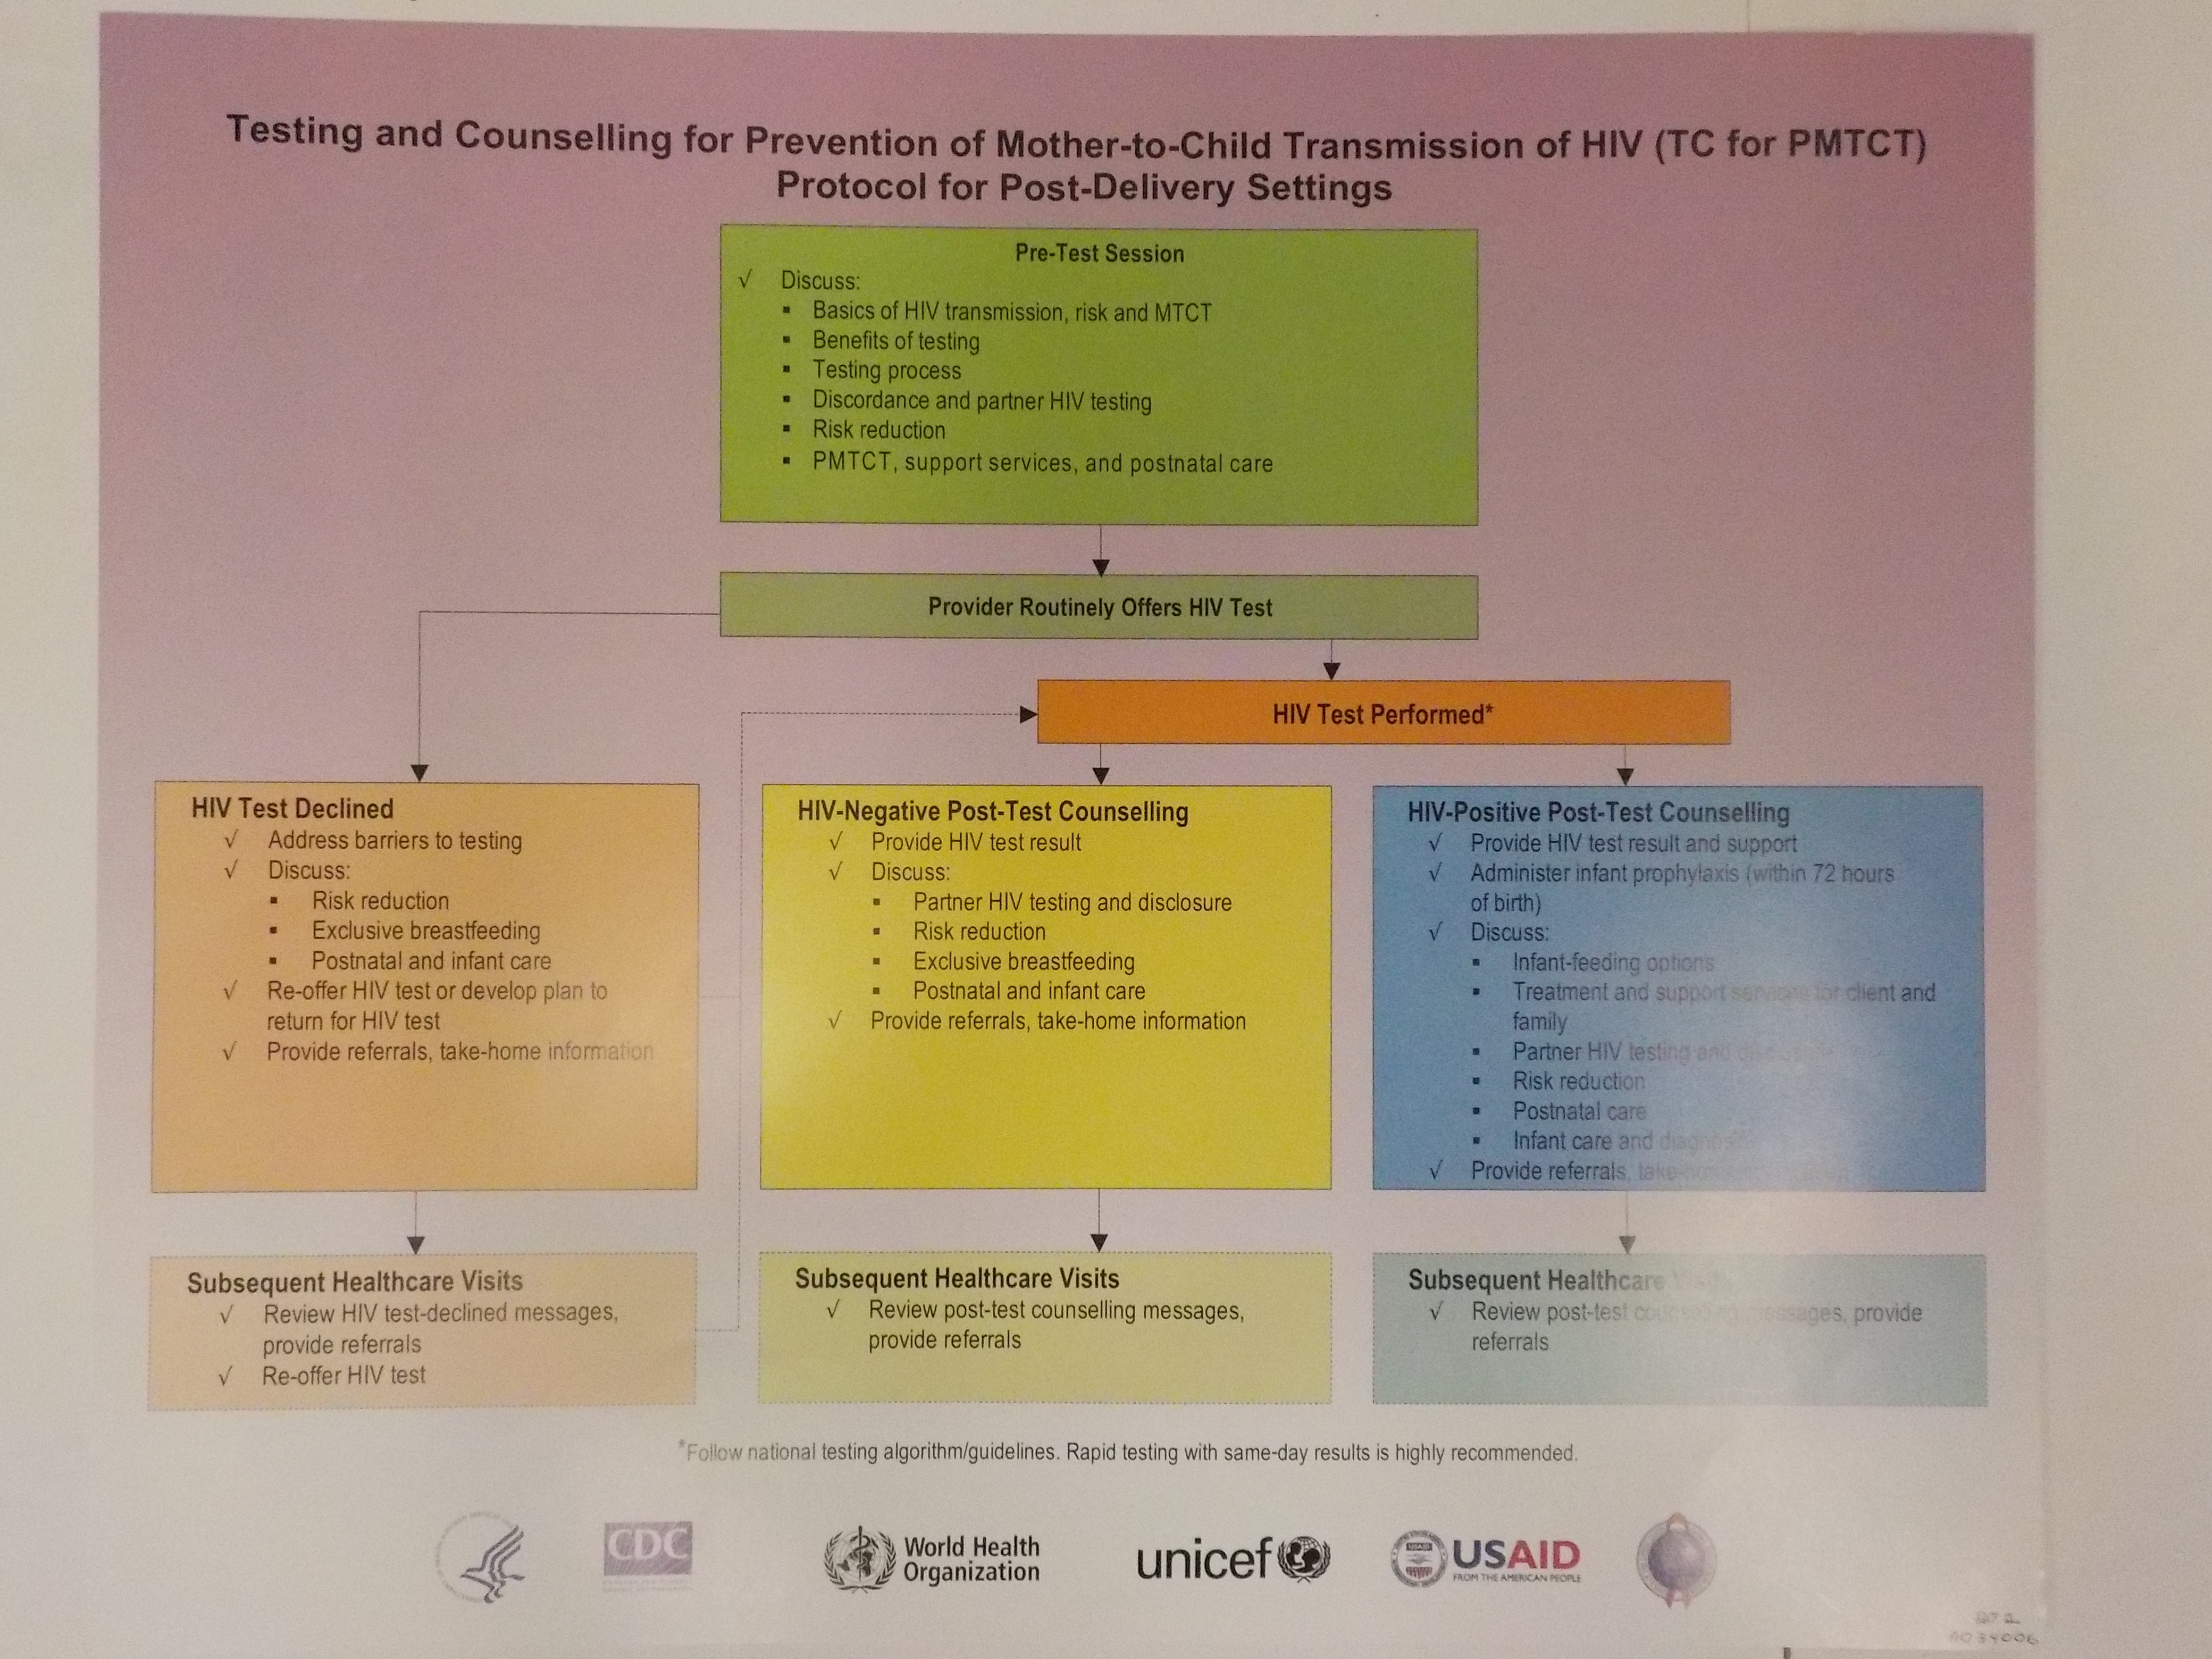 Testing and counselling for prevention of mother-to-child transmission of HIV (TC for PMTCT) protocol for post-delivery settings